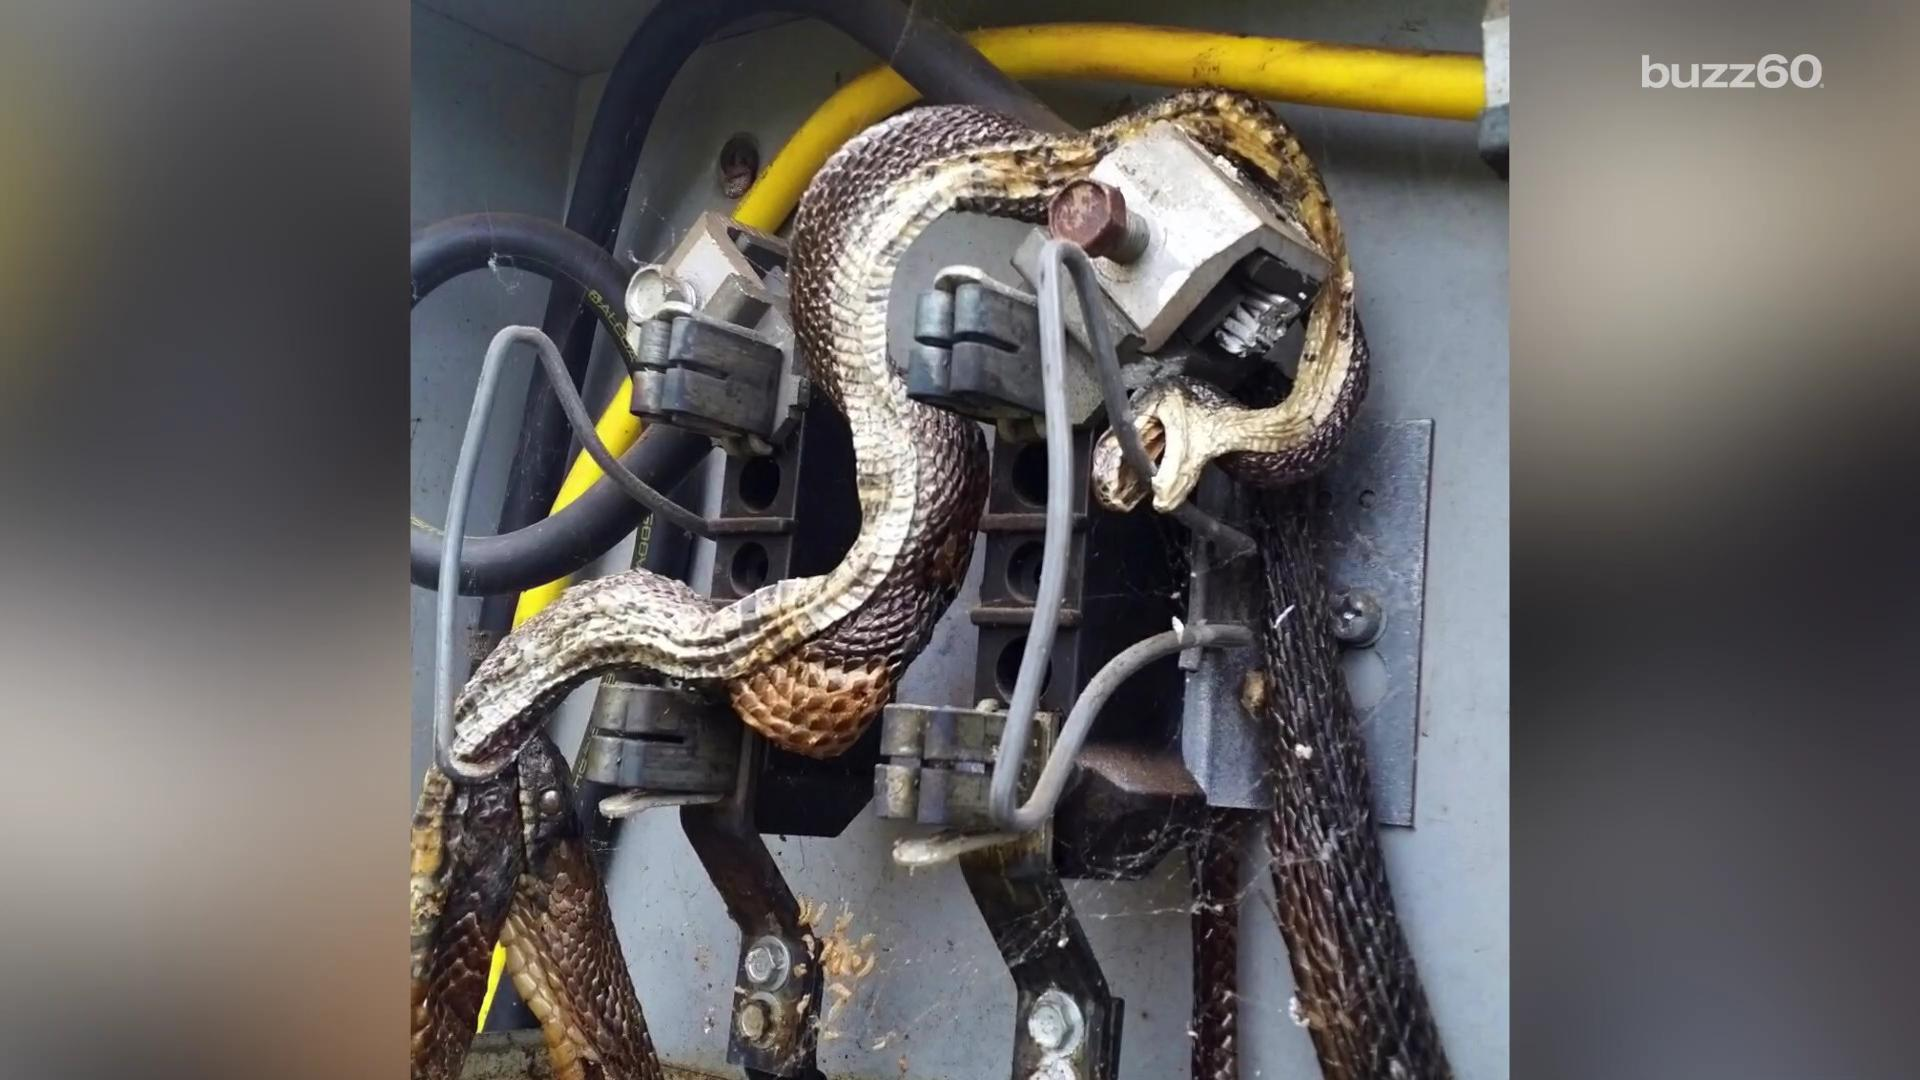 Electrocuted snake found trying to eat another electrocuted snake